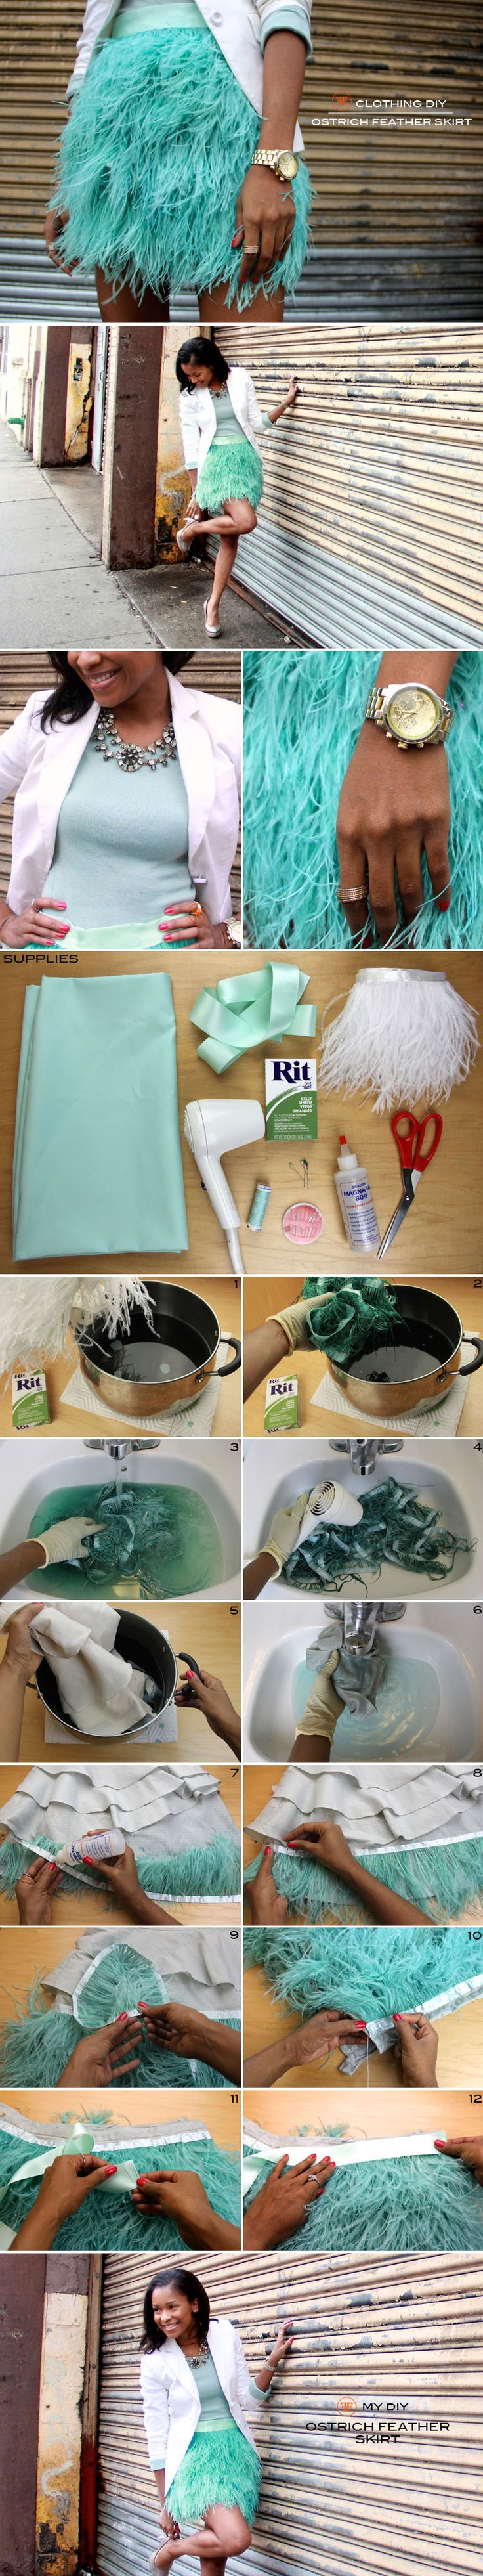 For Angel costume; Feather bottom idea.  Pinner said: Ostrich Feather Skirt #pistachio #springcolortrend | Frugal-nomics.com